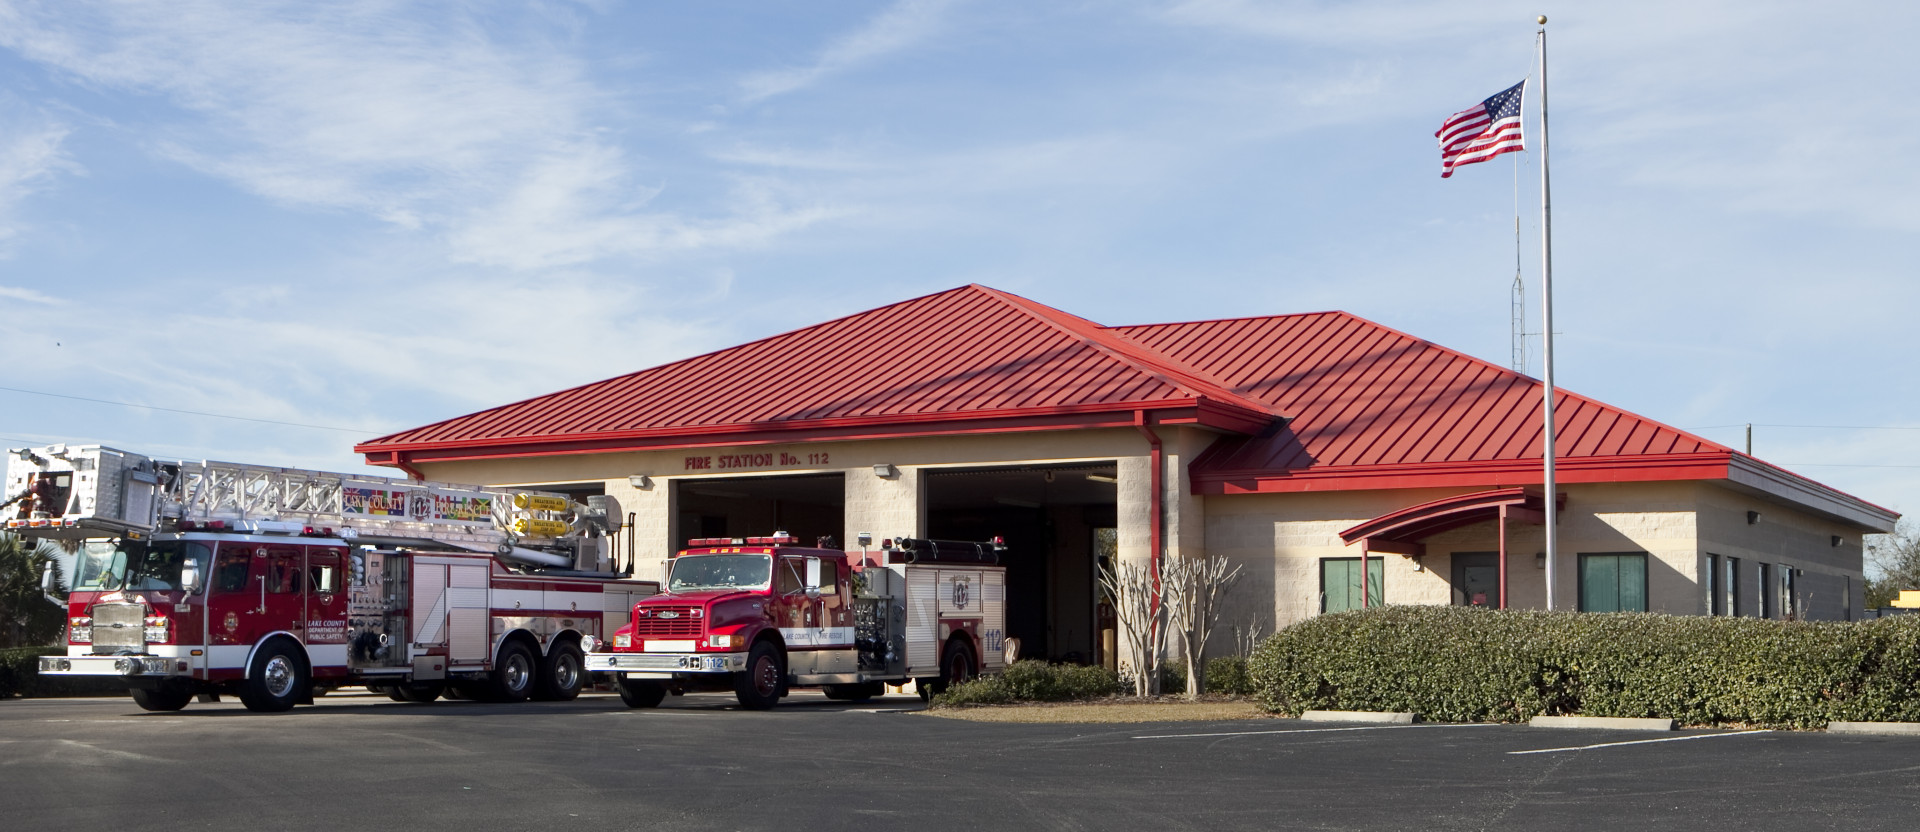 SummerBayFireStation